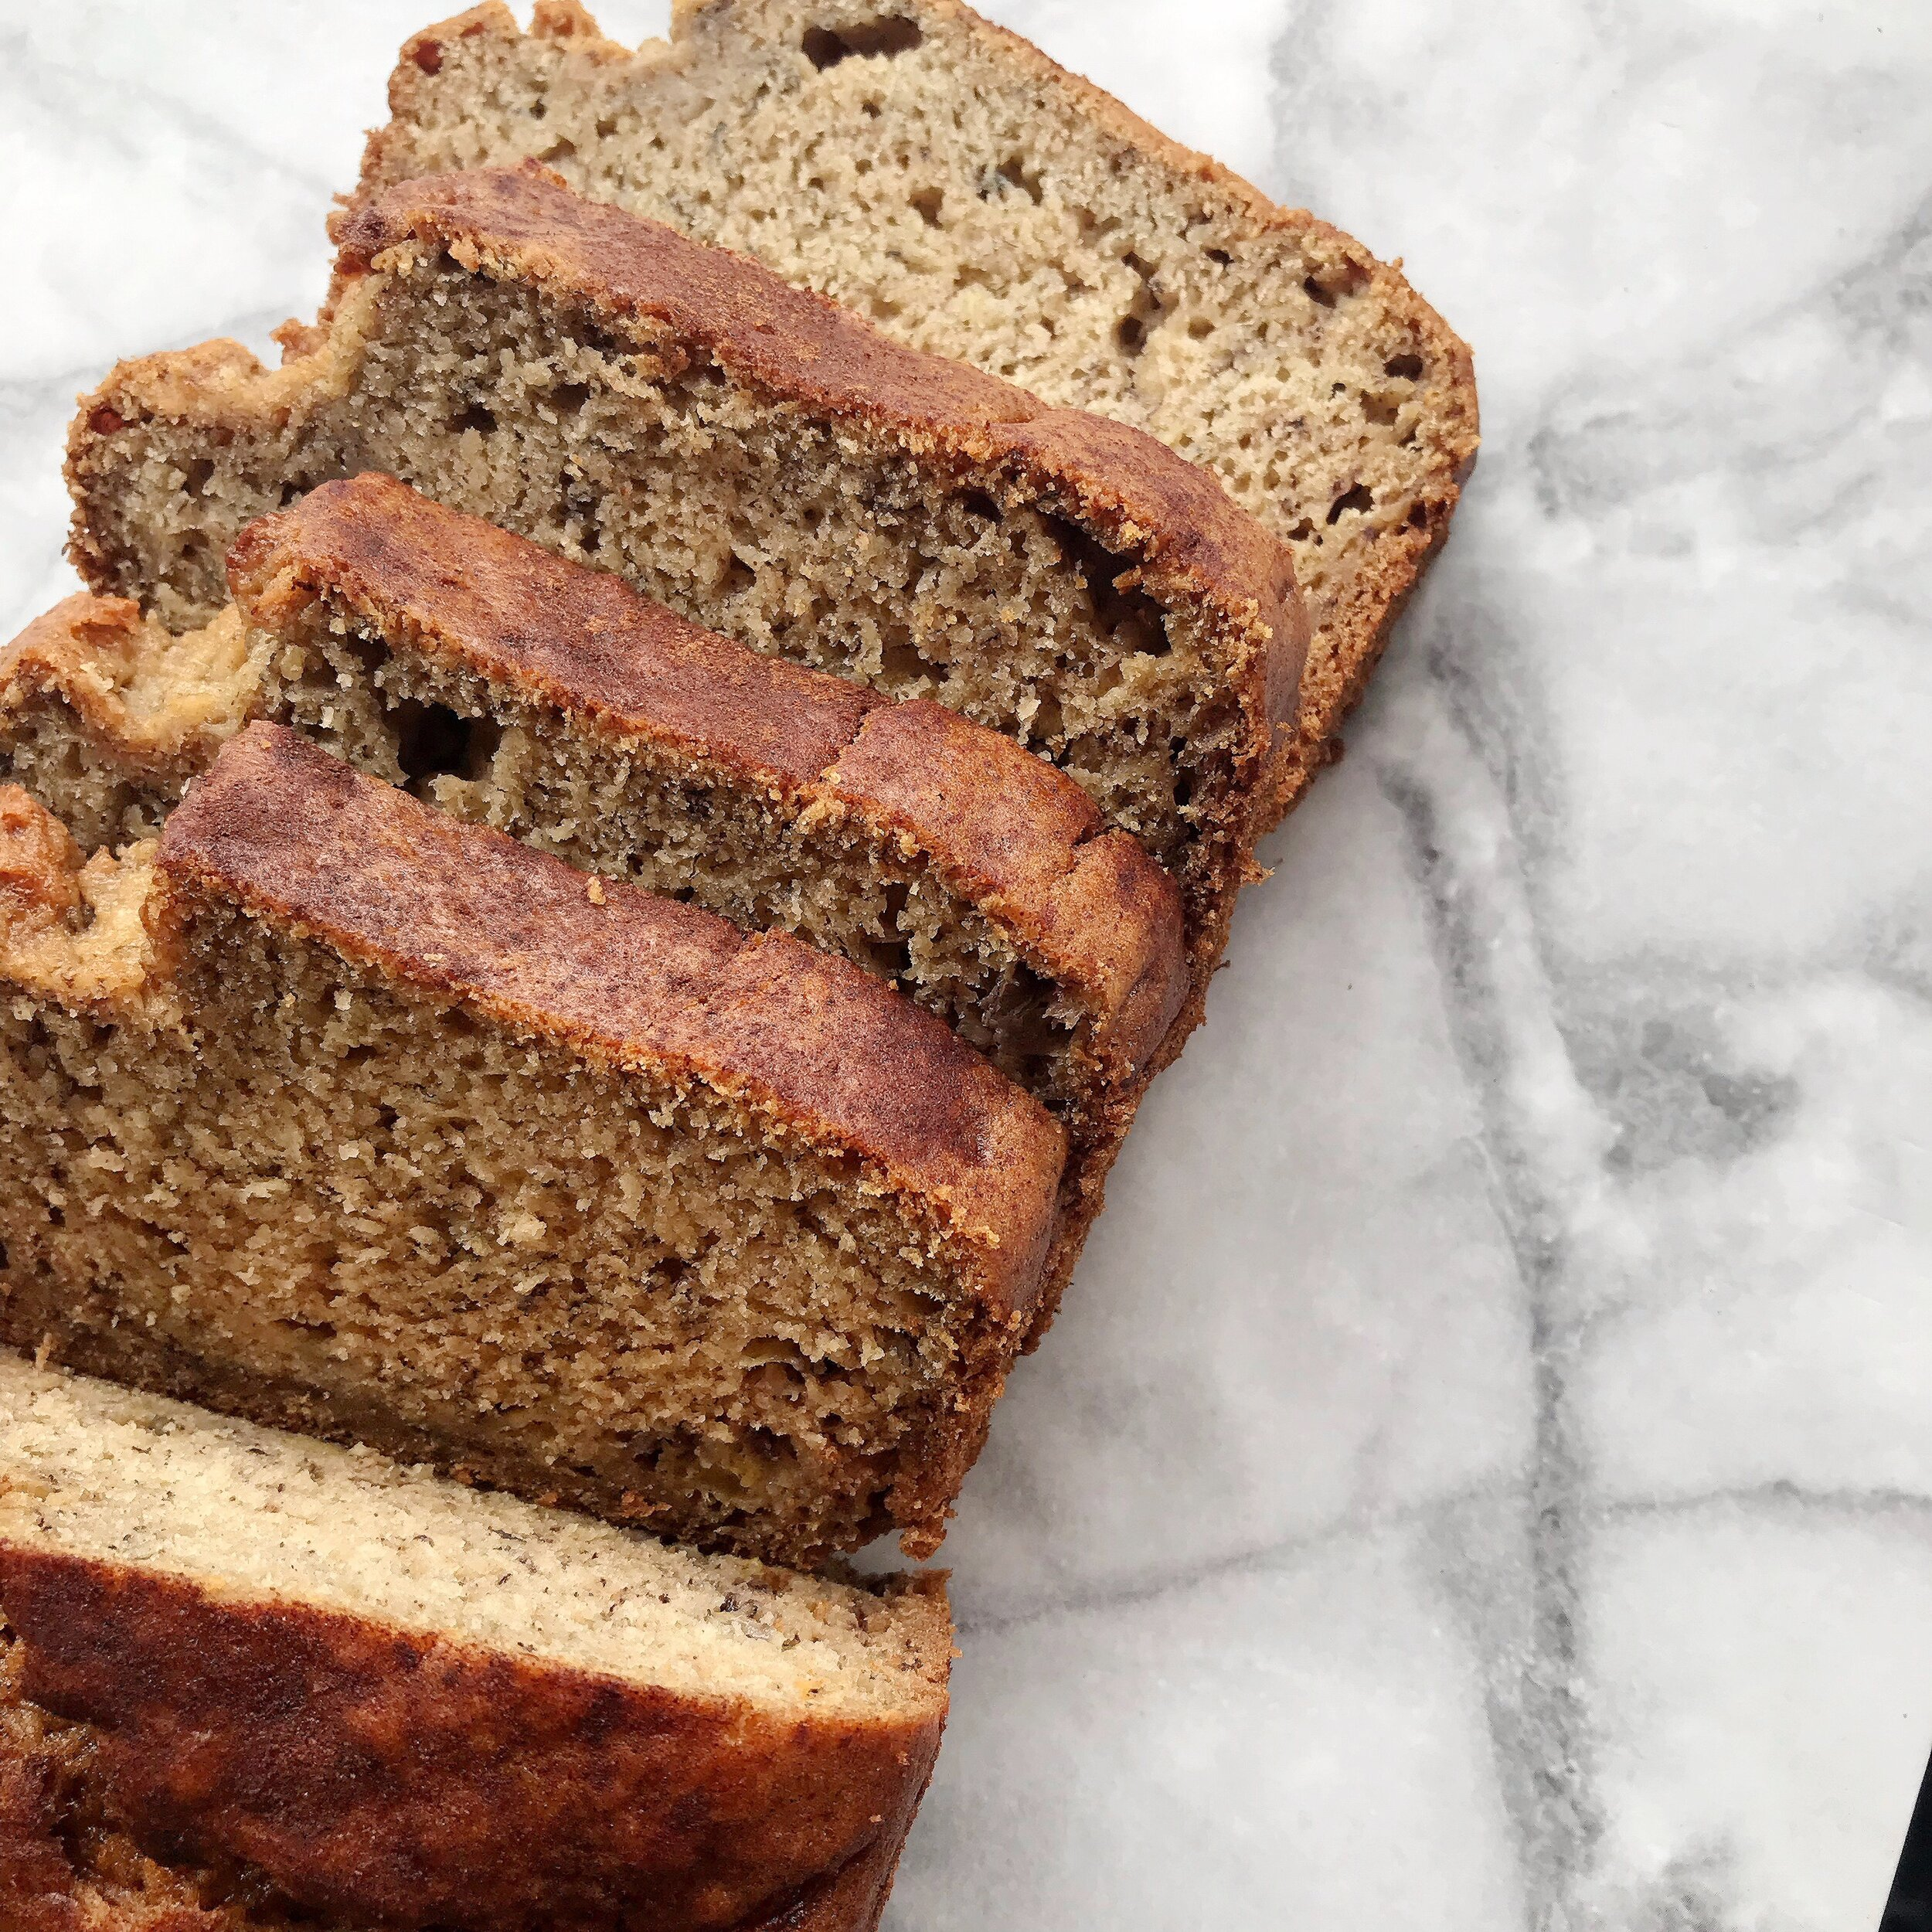 Better For You Banana Bread - 1/3 cup melted coconut oil + 1/2 cup maple syrup + 2 eggs + 1 cup mashed ripe bananas + 1/4 cup almond milk + 1 tsp. baking soda + 1 tsp. vanilla + 1/2 tsp. salt + 1/2 tsp. ground cinnamon + 1 3/4 cups whole wheat flourPreheat oven to 325 degrees Fahrenheit and grease a 9x5 inch loaf panIn a large bowl mix together the eggs, honey, and oil, then add the mashed bananas and milk. Add in the baking soda, vanilla, salt, and cinnamon and whisk to blend. Lastly, mix in the flour until combined.Pour the batter into your pan and sprinkle lightly with cinnamonBake for 55- 60 minutes or until a toothpick is inserted into the middle and comes out clean. Let the bread cool in the loaf pan for 10 minutes!